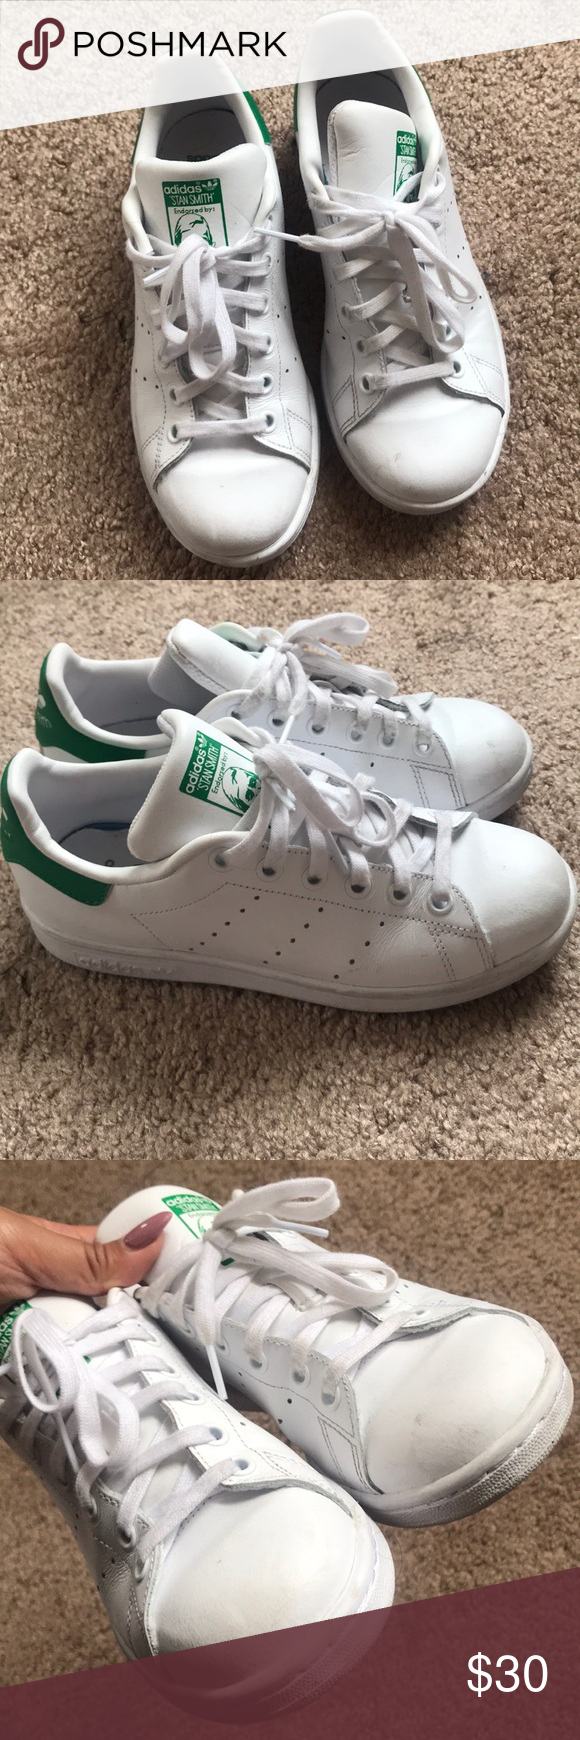 finest selection 363d2 0e50d Adidas Stan Smith with Green Trim Barely worn Adidas Stan ...